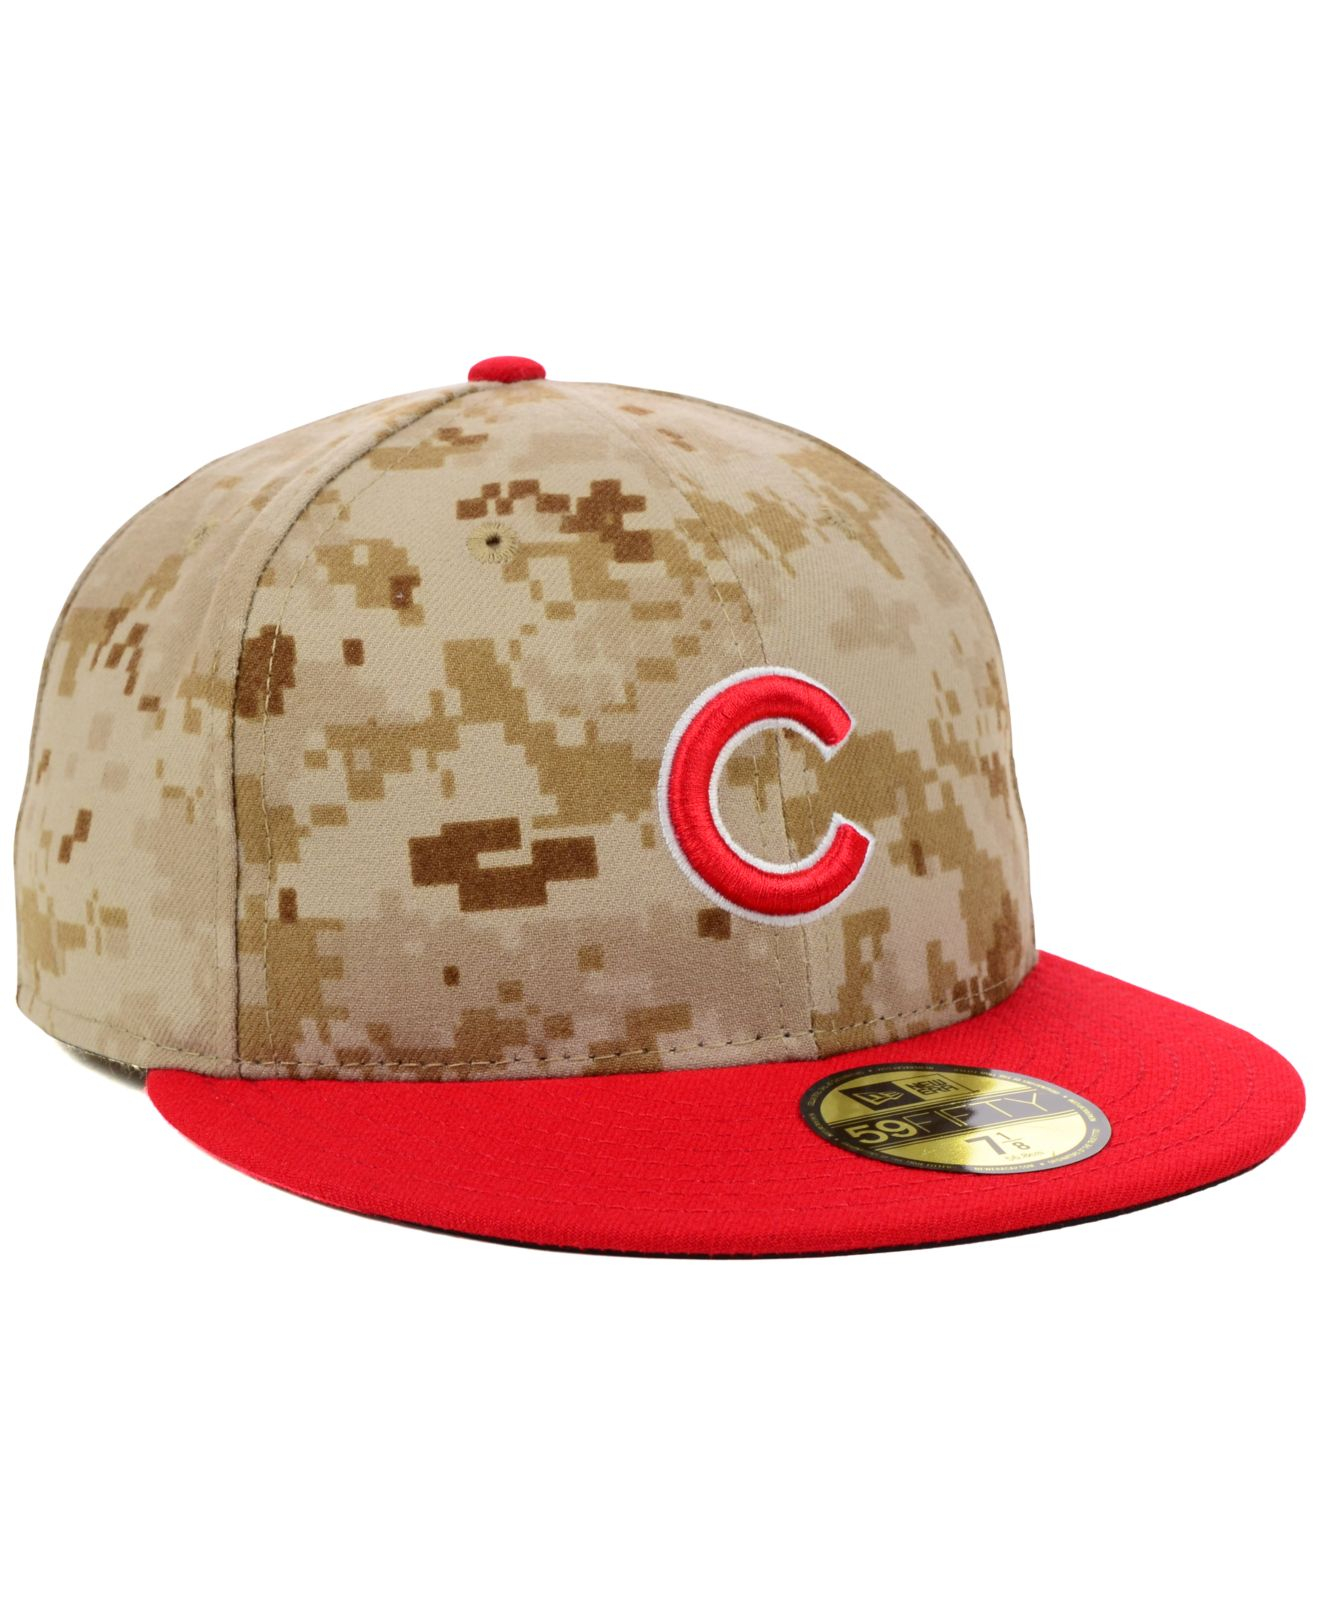 a93d87dbb21 ... new style lyst ktz chicago cubs 2014 stars and stripes 59fifty cap in  red 5880b b7a13